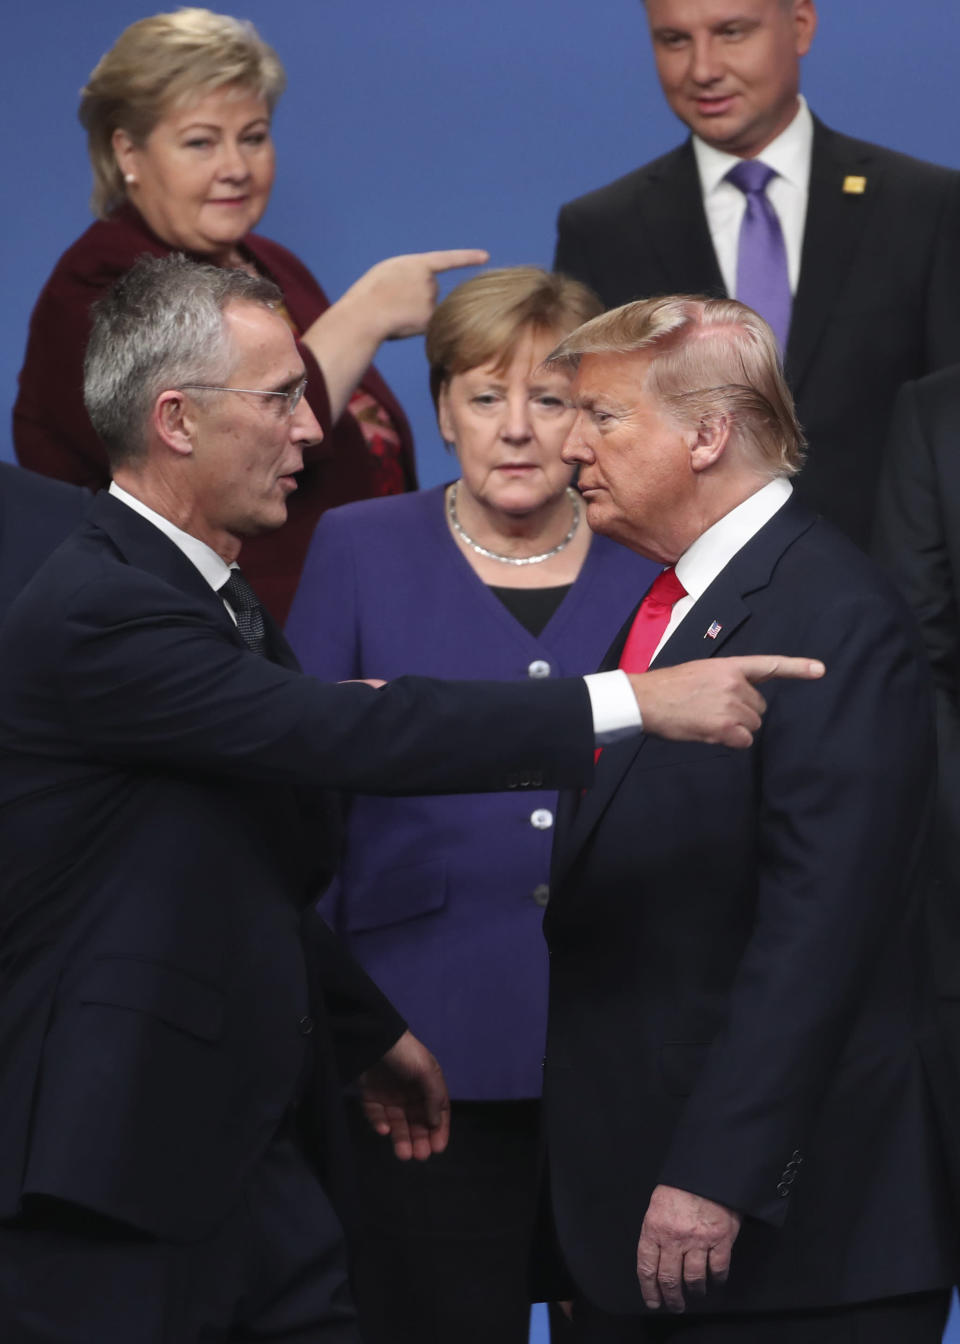 NATO Secretary General Jens Stoltenberg, left, speaks with U.S. President Donald Trump, right, after a group photo at a NATO leaders meeting at The Grove hotel and resort in Watford, Hertfordshire, England, Wednesday, Dec. 4, 2019. NATO Secretary-General Jens Stoltenberg rejected Wednesday French criticism that the military alliance is suffering from brain death, and insisted that the organization is adapting to modern challenges. (AP Photo/Francisco Seco)